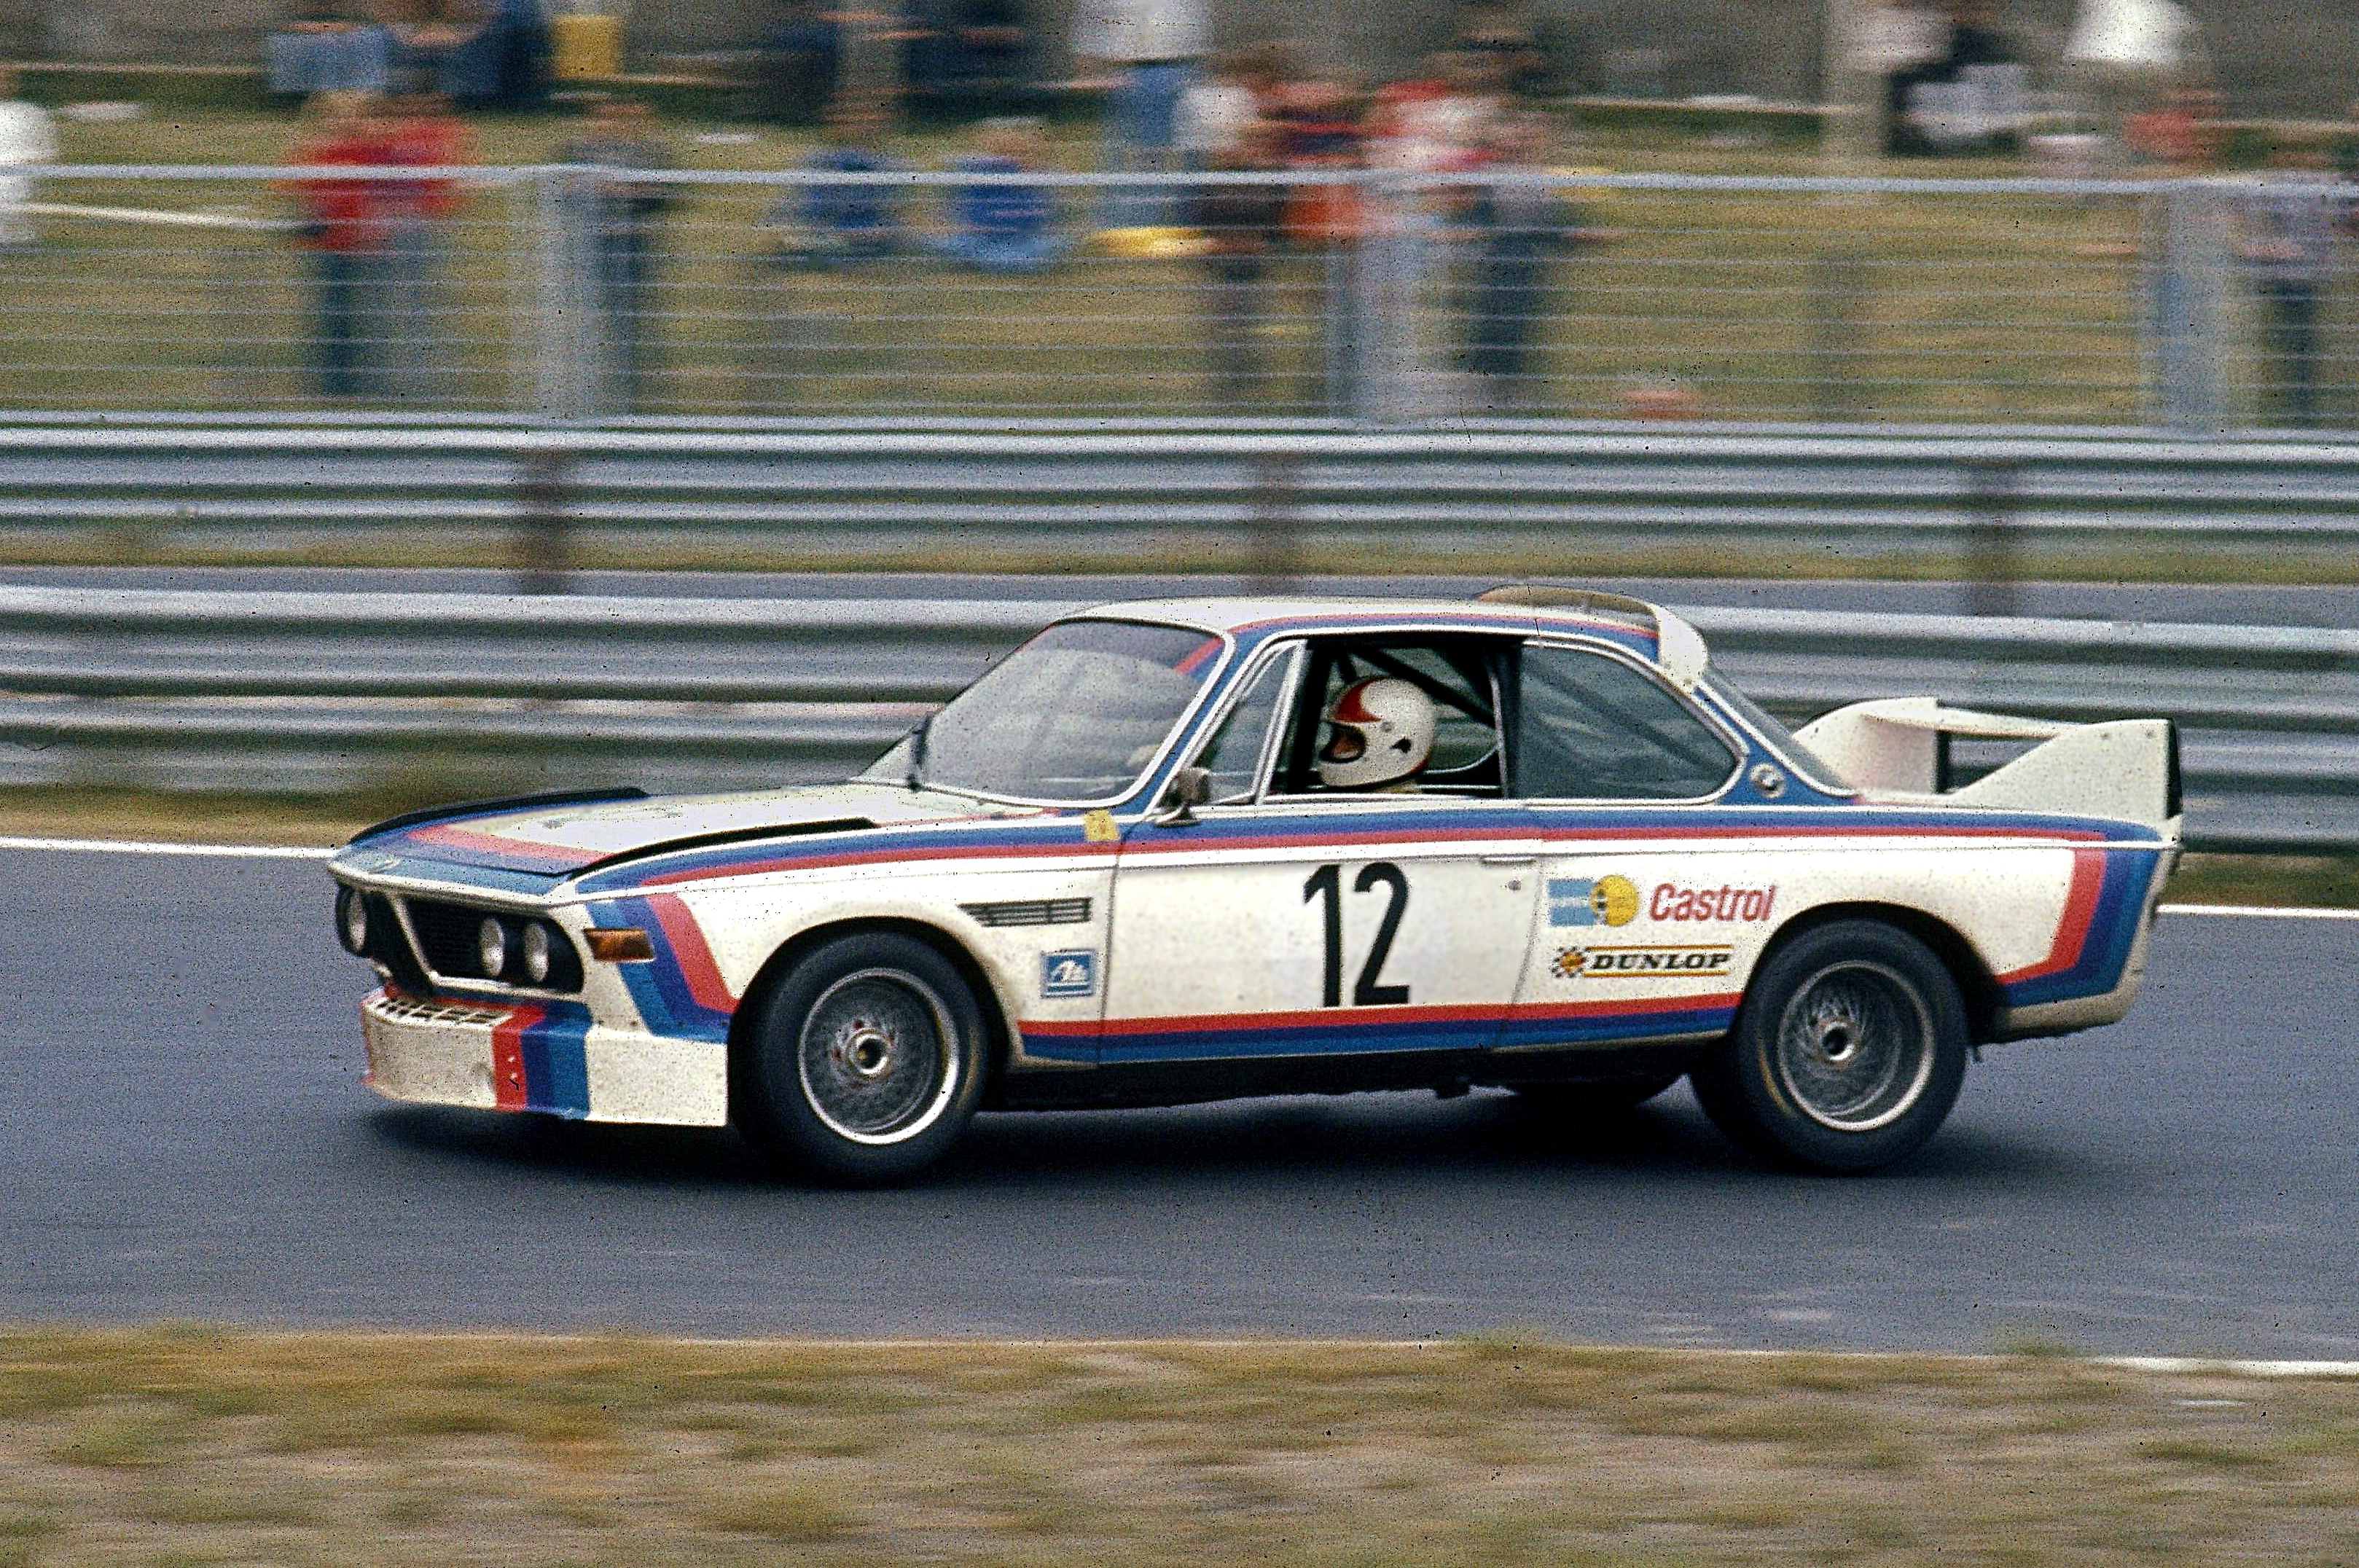 Bmw 3.0 Csl >> File Amon Chris Bmw 3 5 Csl 1973 07 08 Sp Jpg Wikipedia